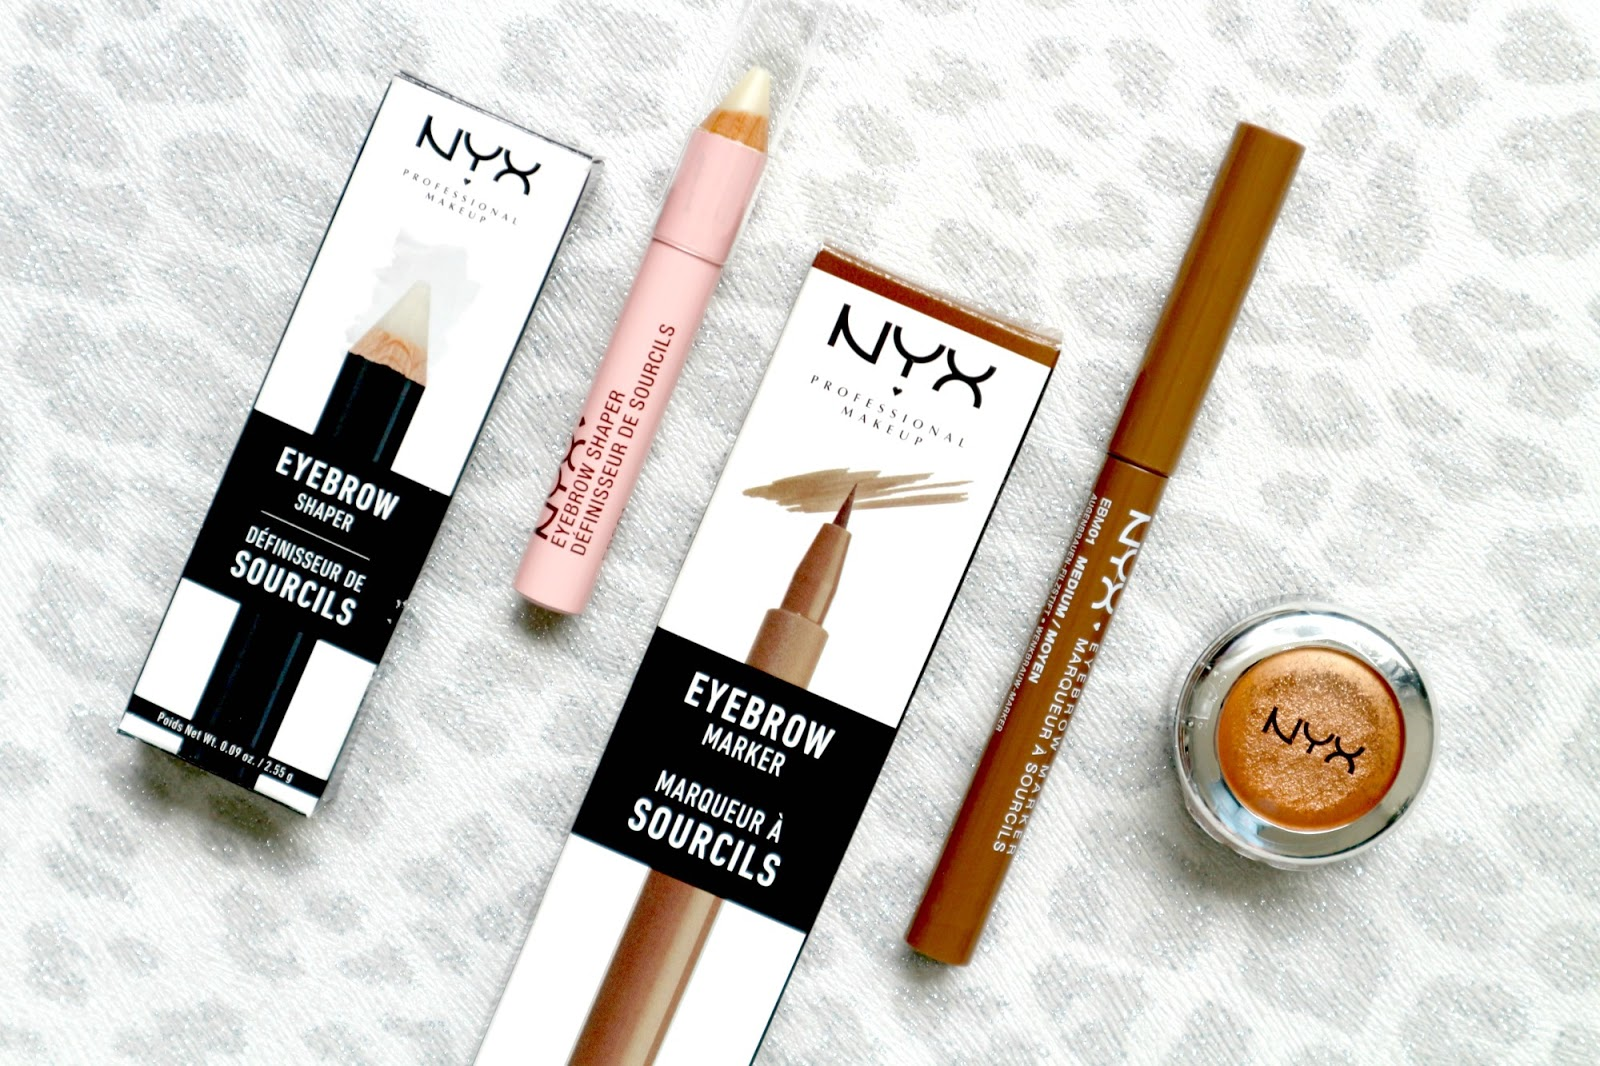 NYX brow products